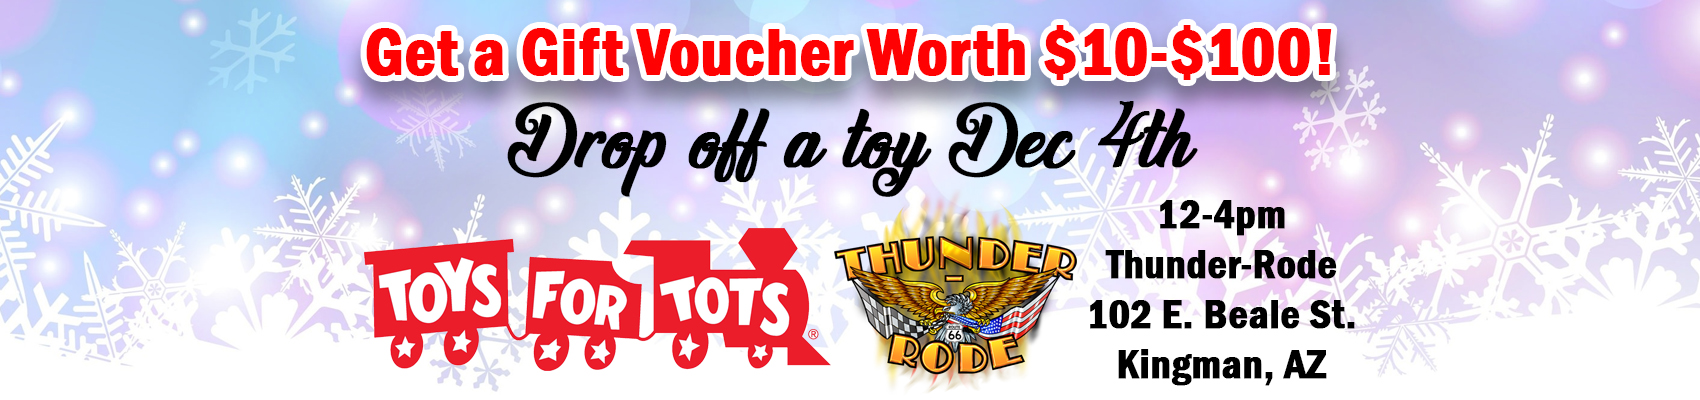 Toys for Tots Kingman AZ at Thunder-Rode